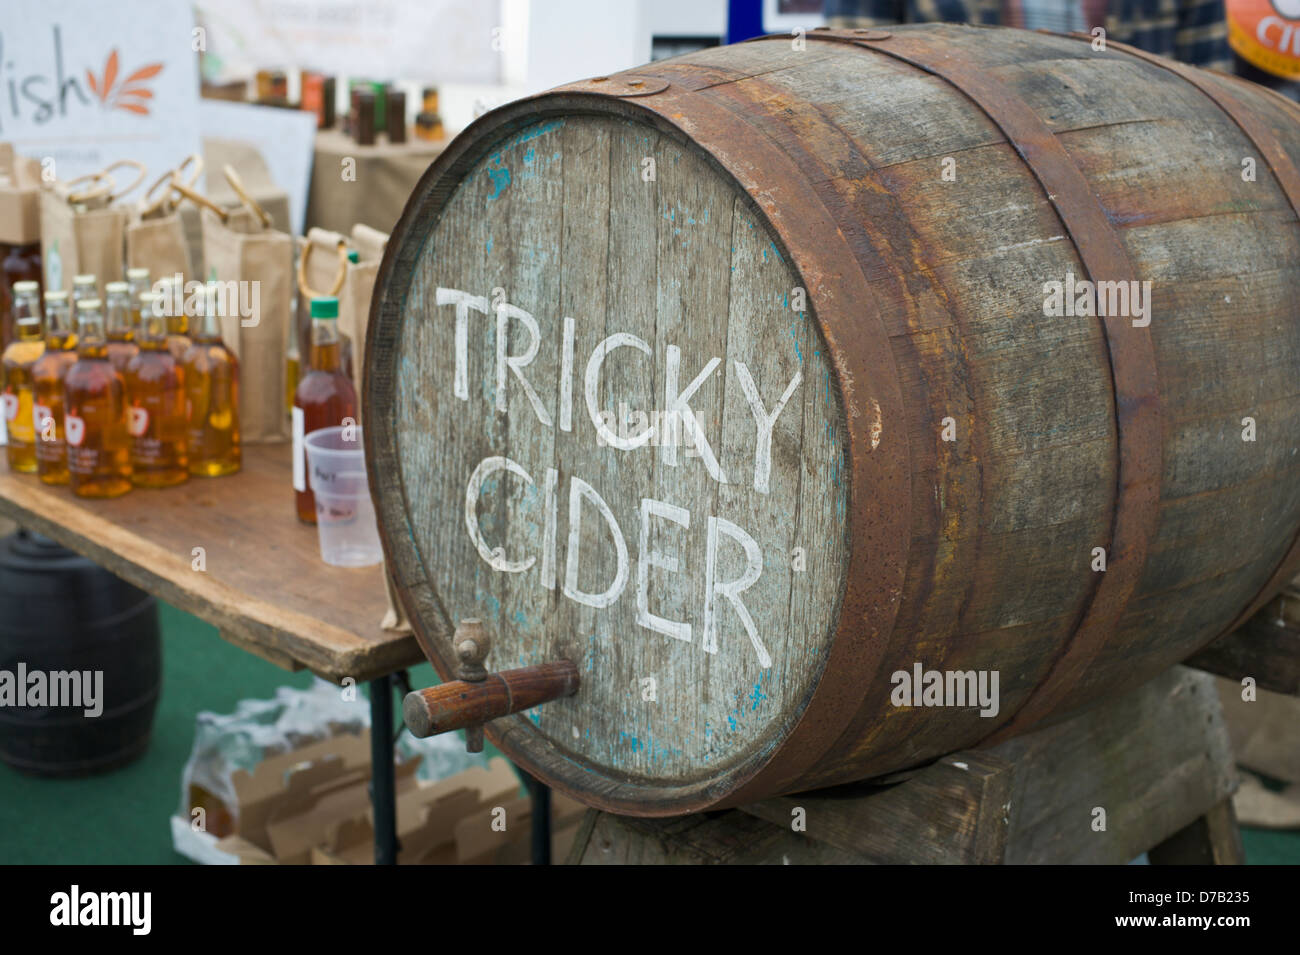 Tricky Cider on sale at Exeter Festival of South West Food & Drink - Stock Image